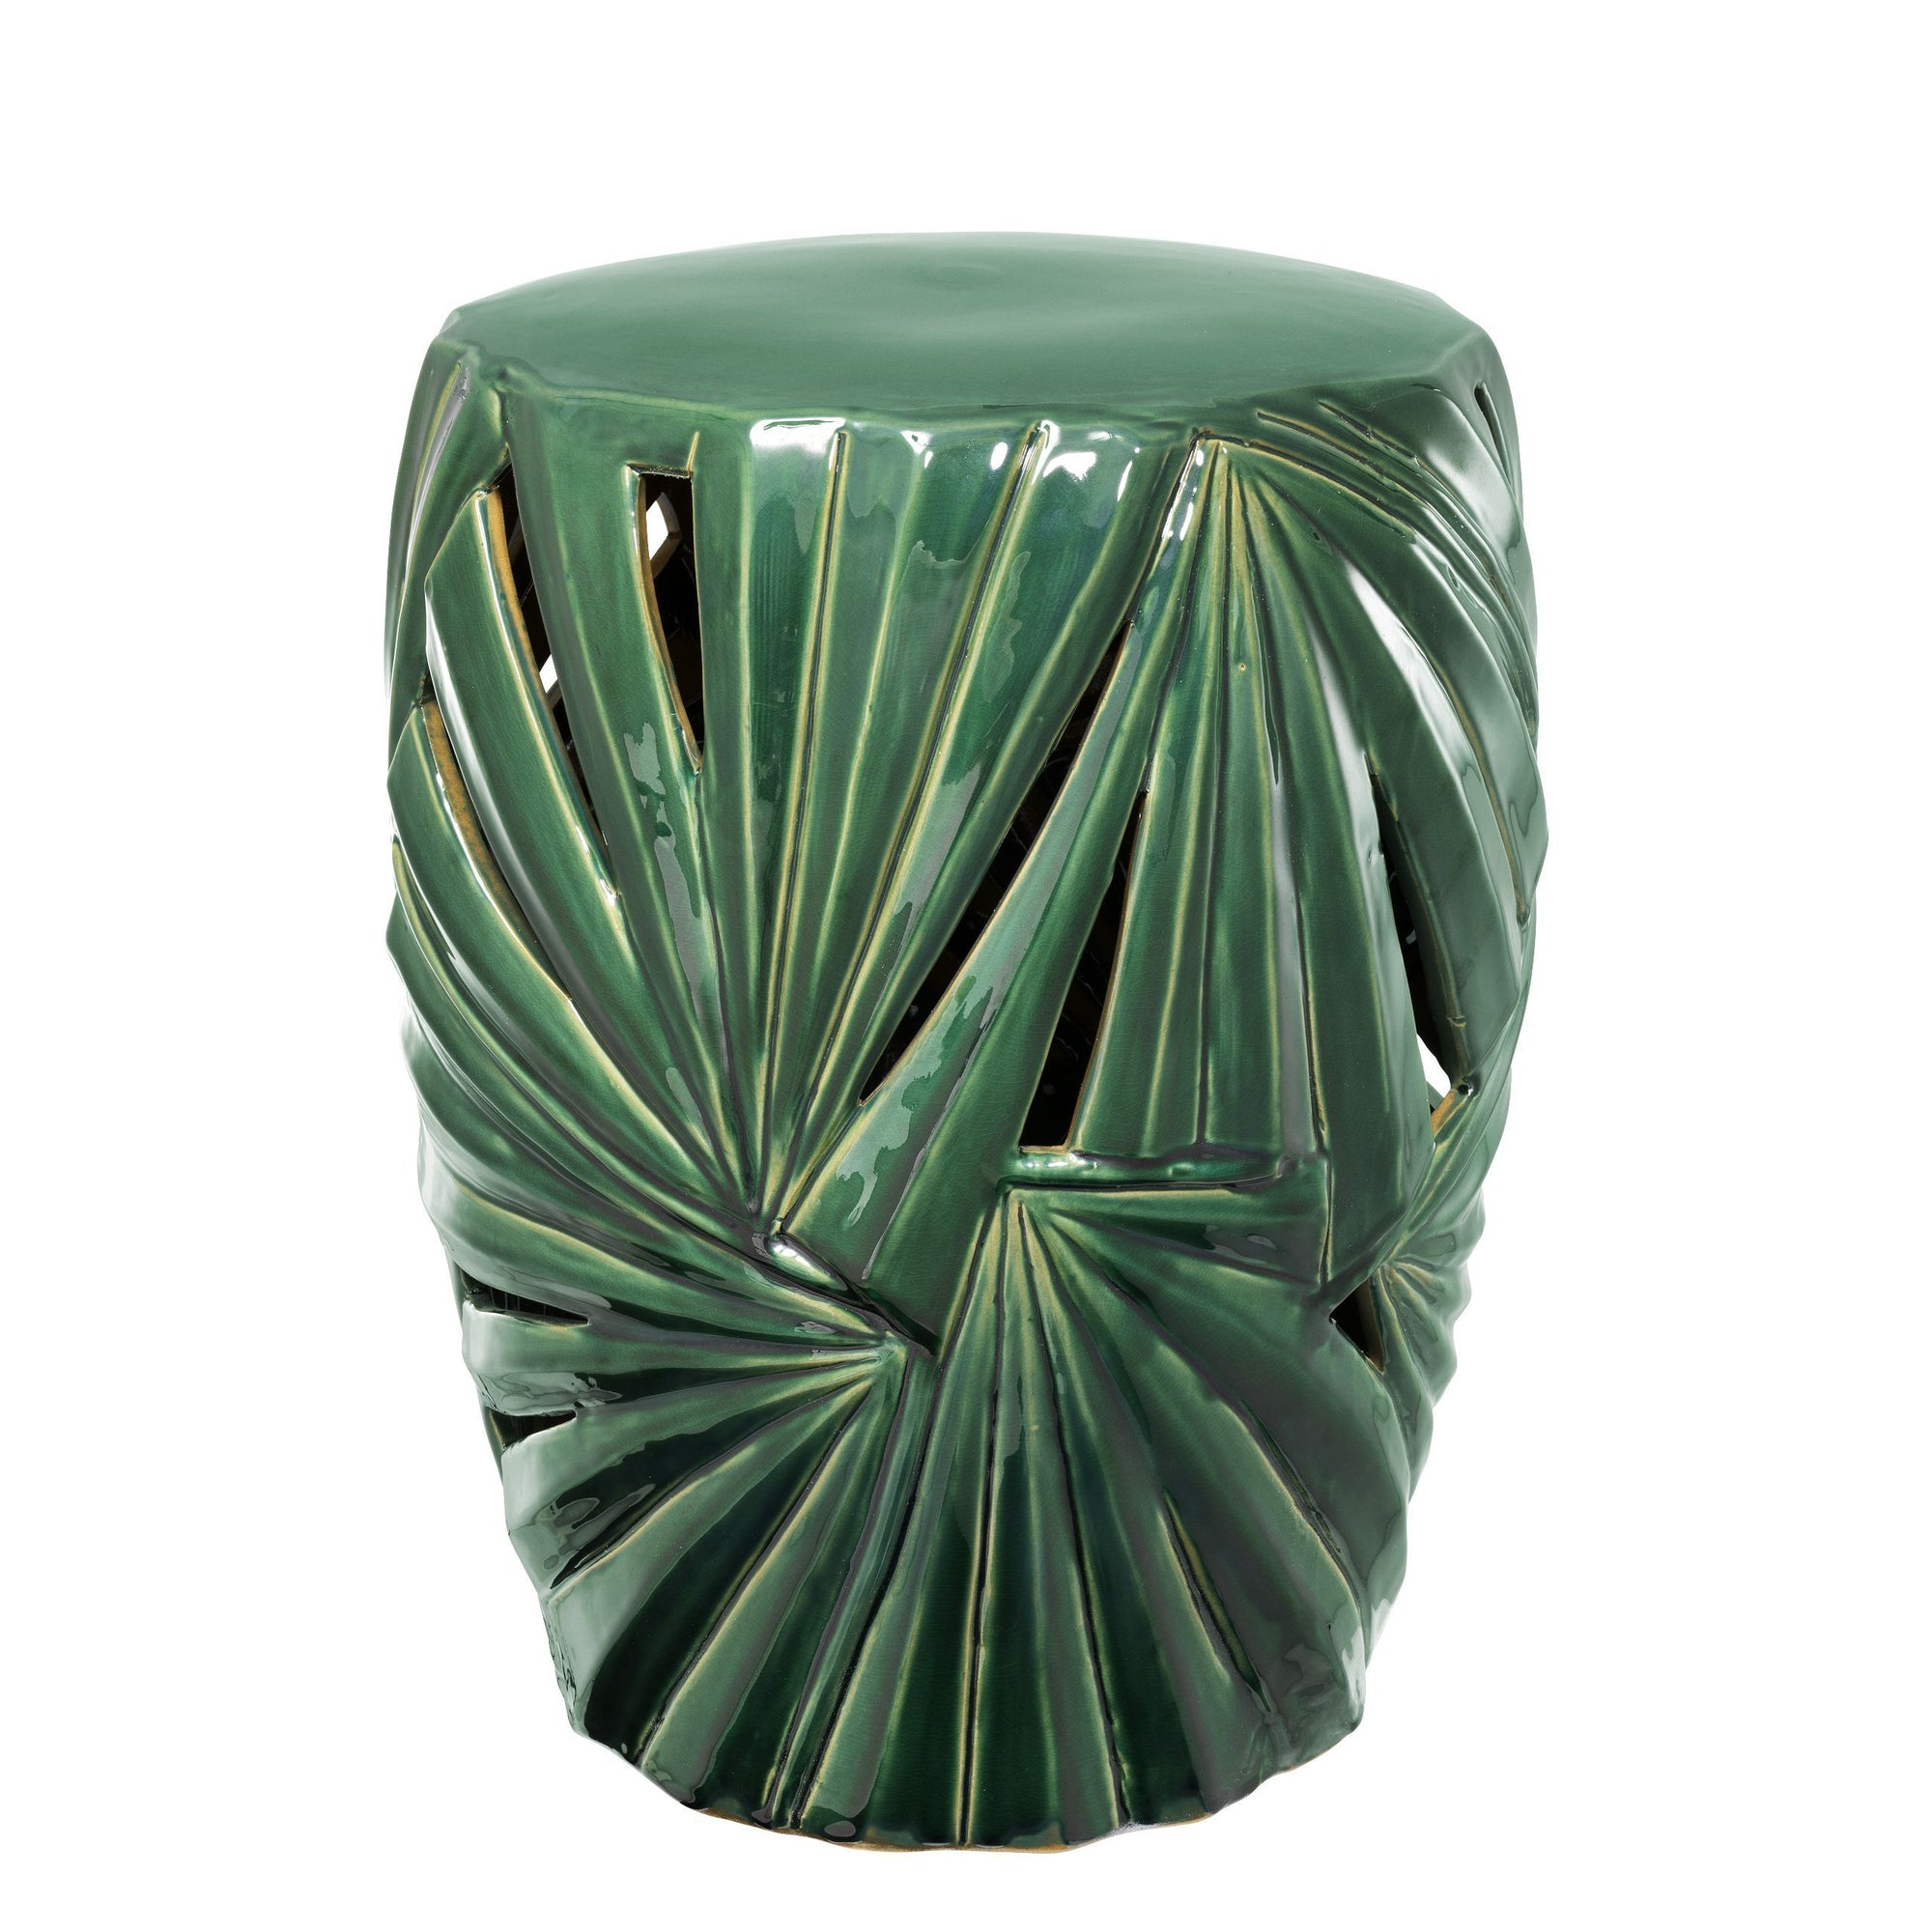 Green Ceramic Drum Table | Eichholtz Madeira